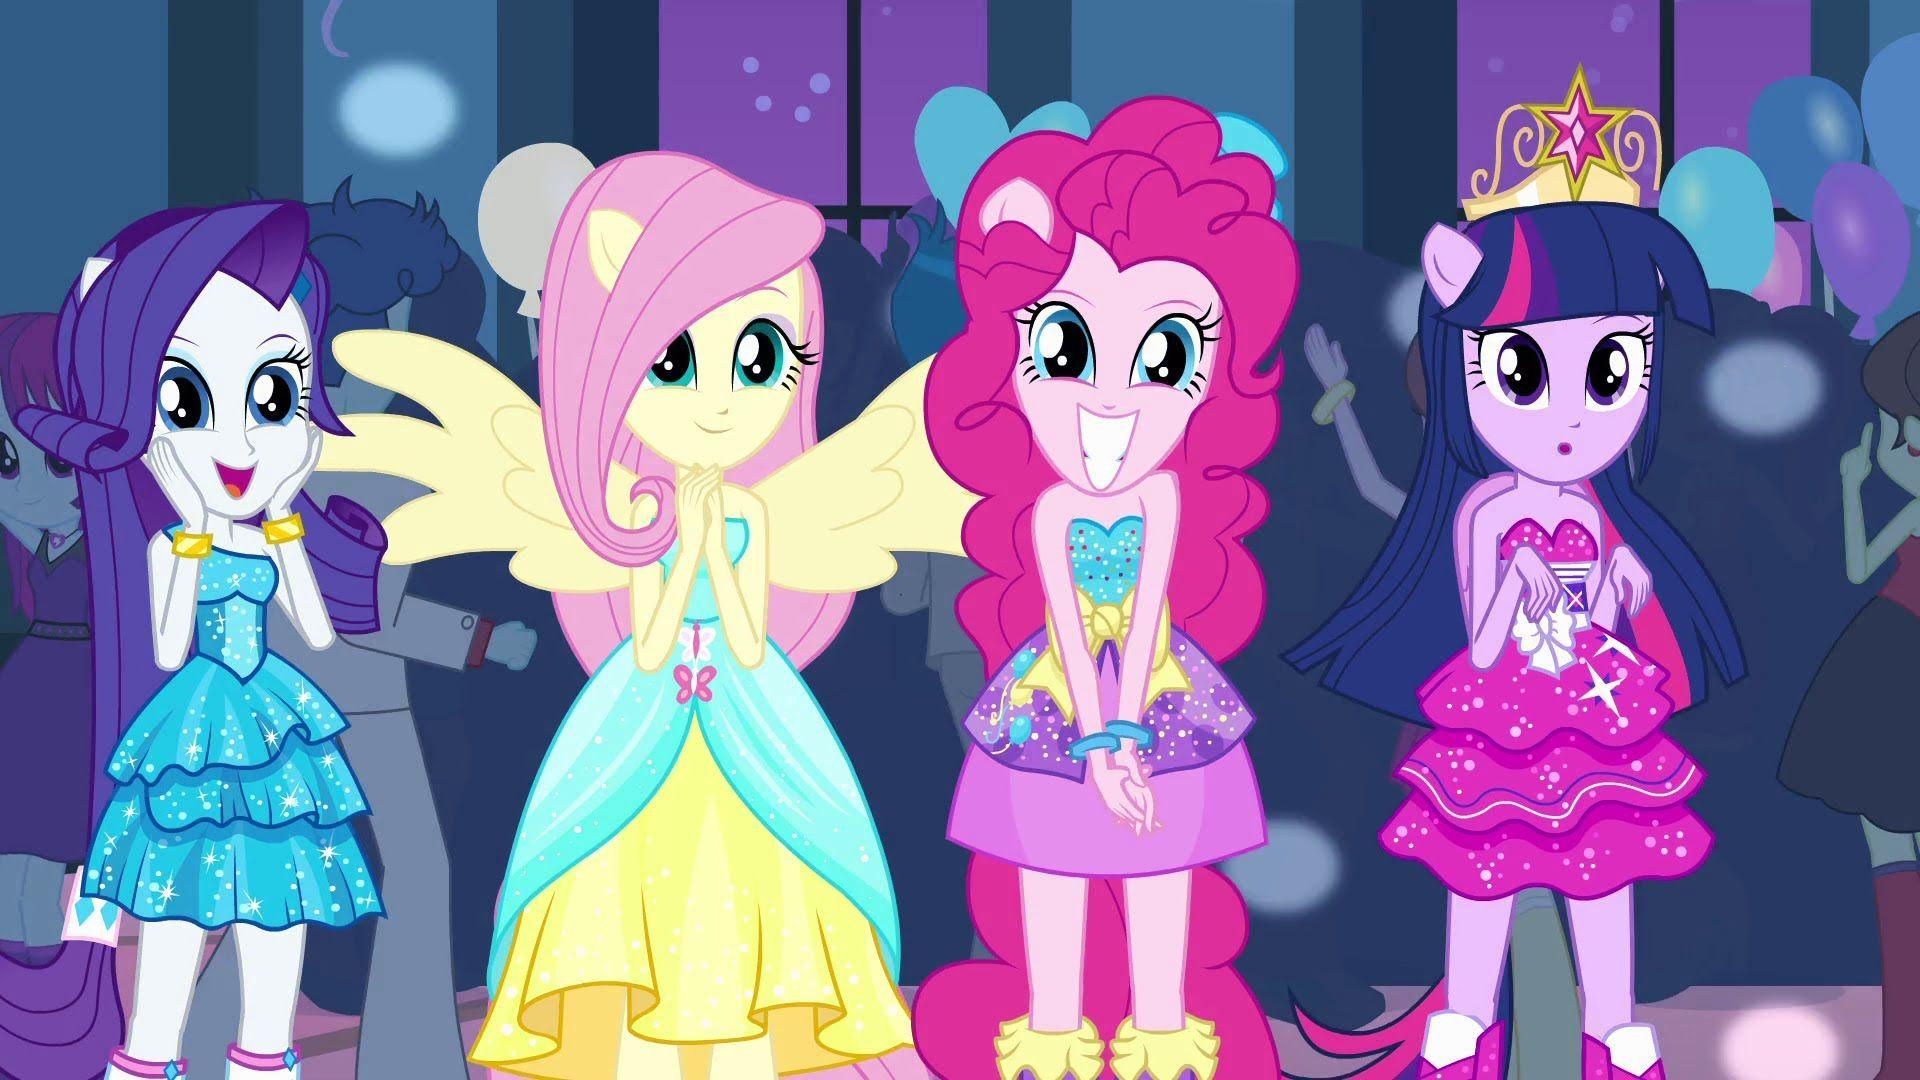 Equestria girls of MLP image picture time HD wallpapers and